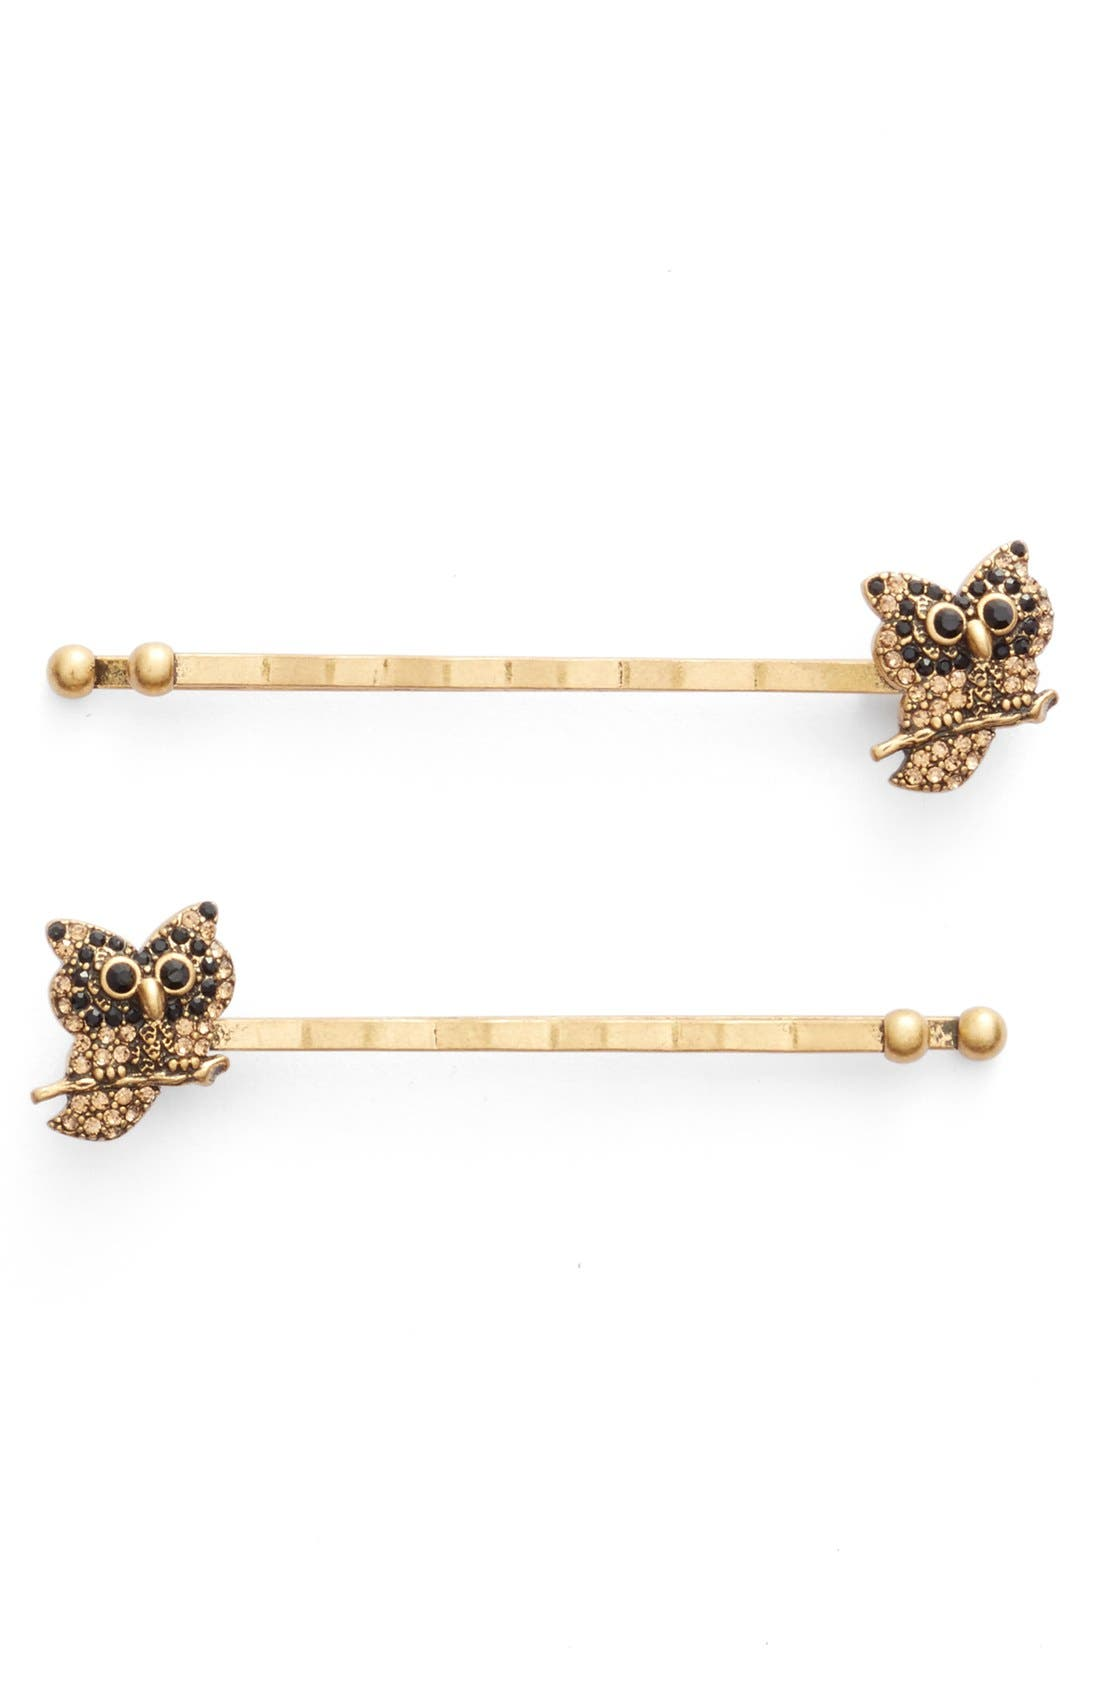 Main Image - MARC JACOBS 'Owl' Bobby Pins (Set of 2)